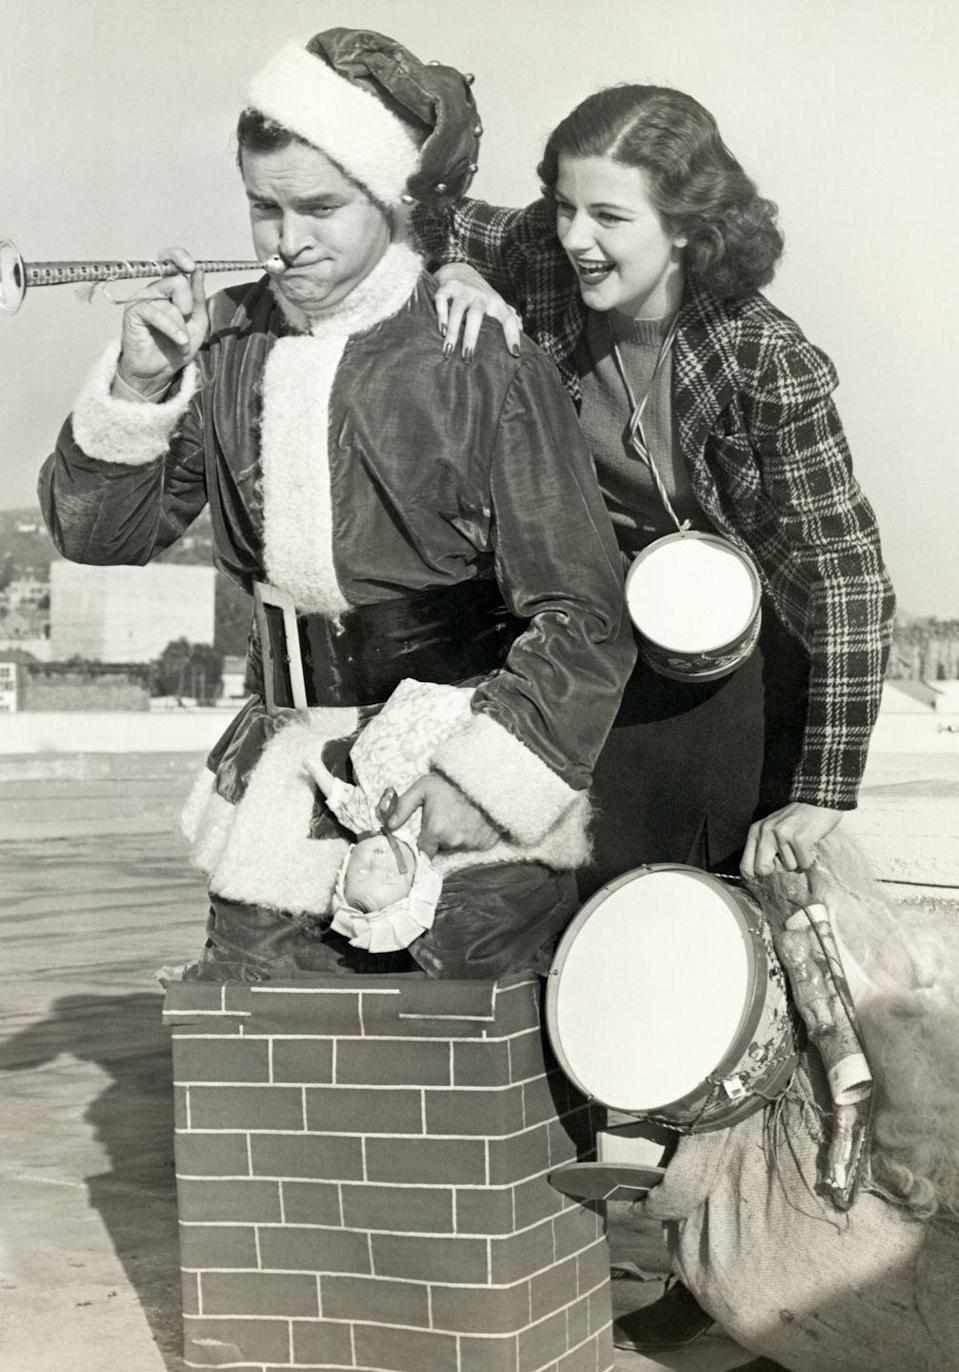 <p>Radio star and comedian Bob Hope conjures up a few laughs from actress Helen Wood as he acts like Santa Claus for an event on December 12, 1938. </p>